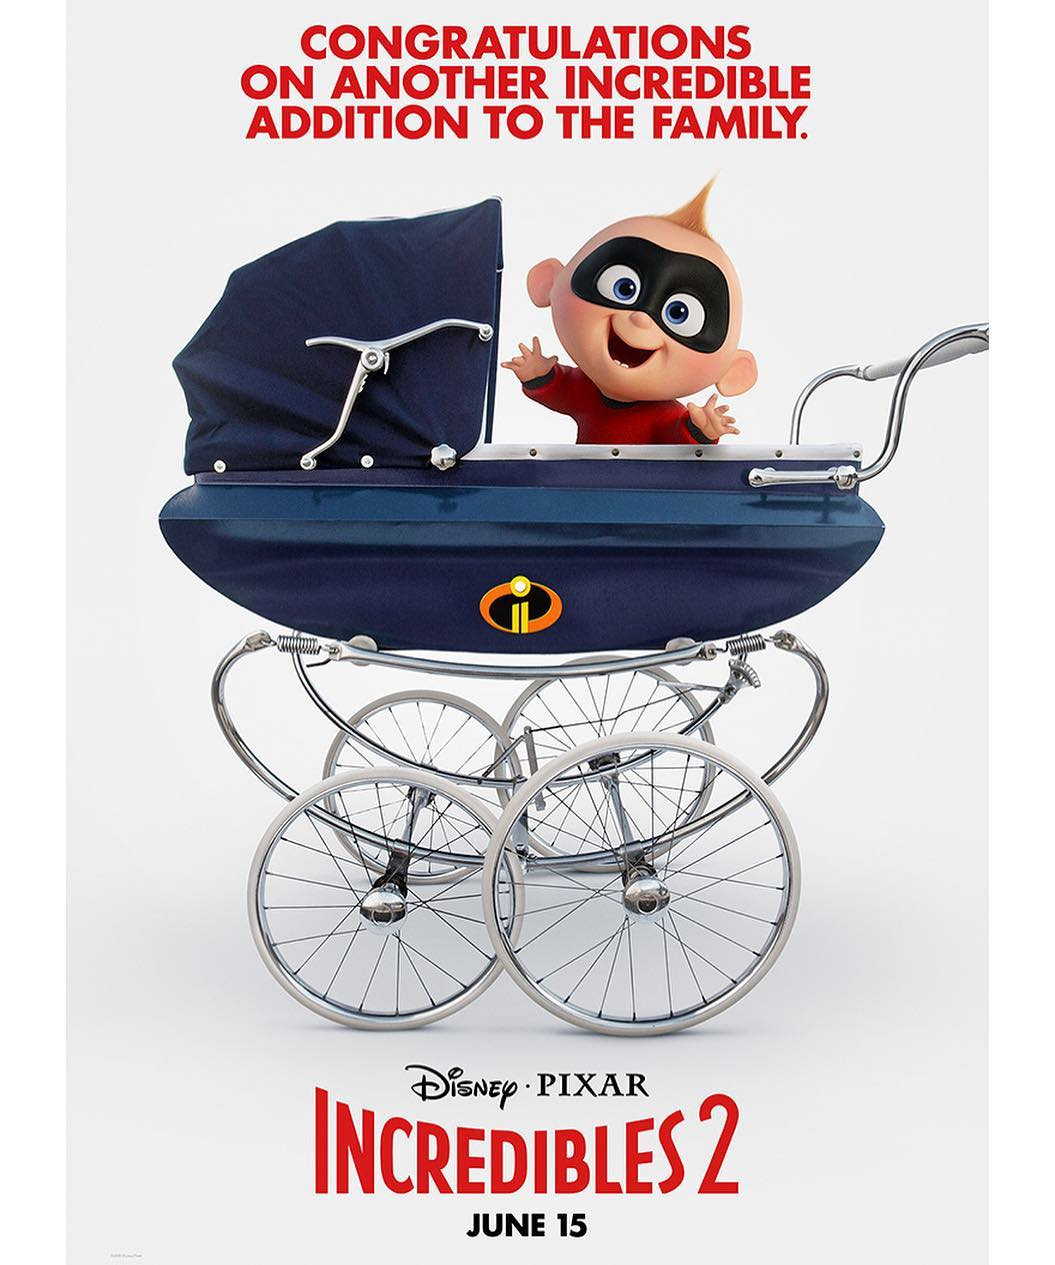 the incredibles 2 poster high quality HD printable wallpapers jack jack in super baby trolly